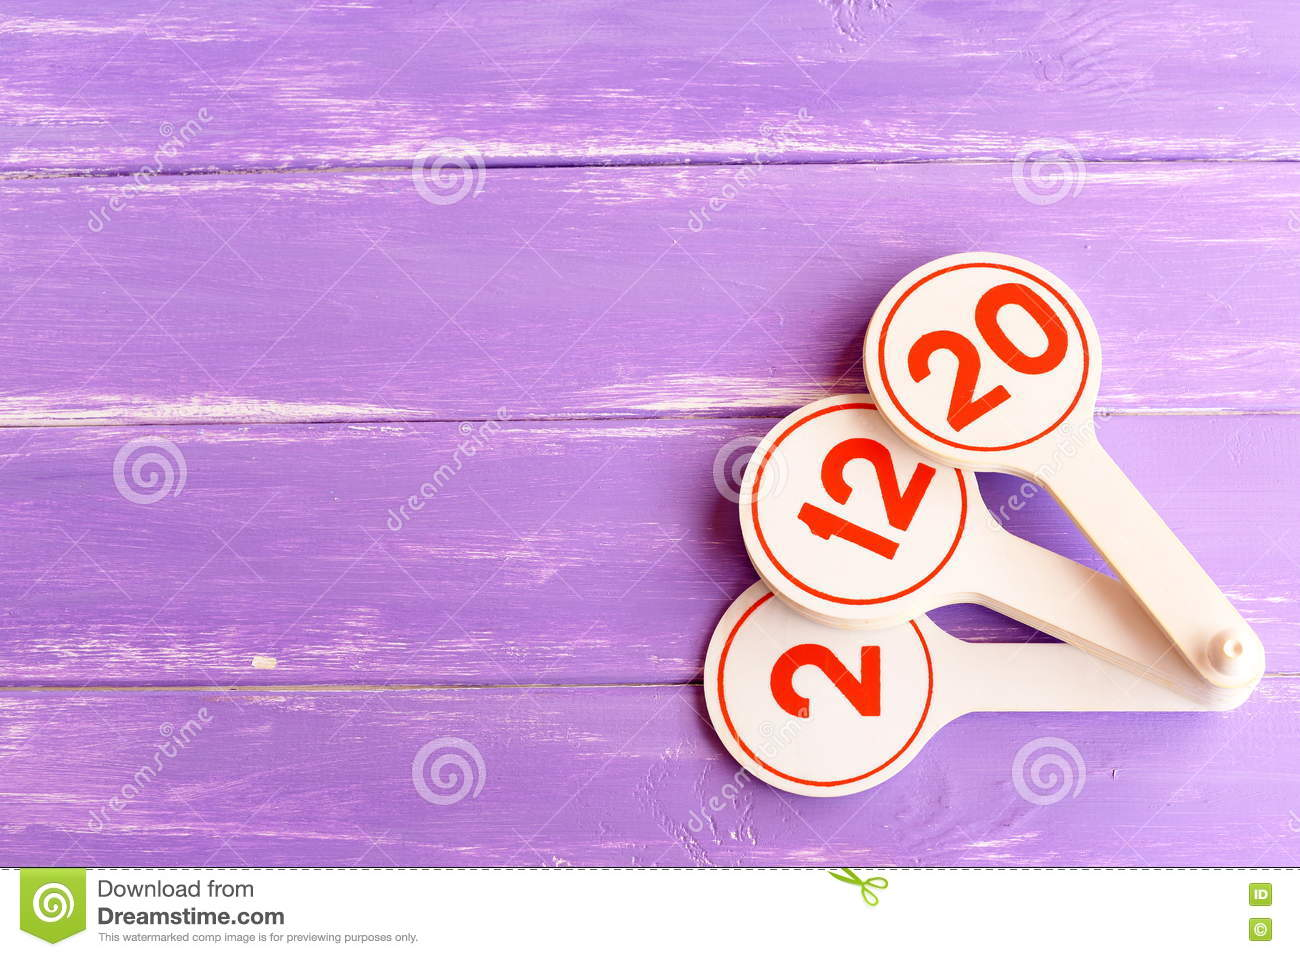 Educational toy to teach children numbers. Learning toy for kids on lilac wooden background with empty space for text